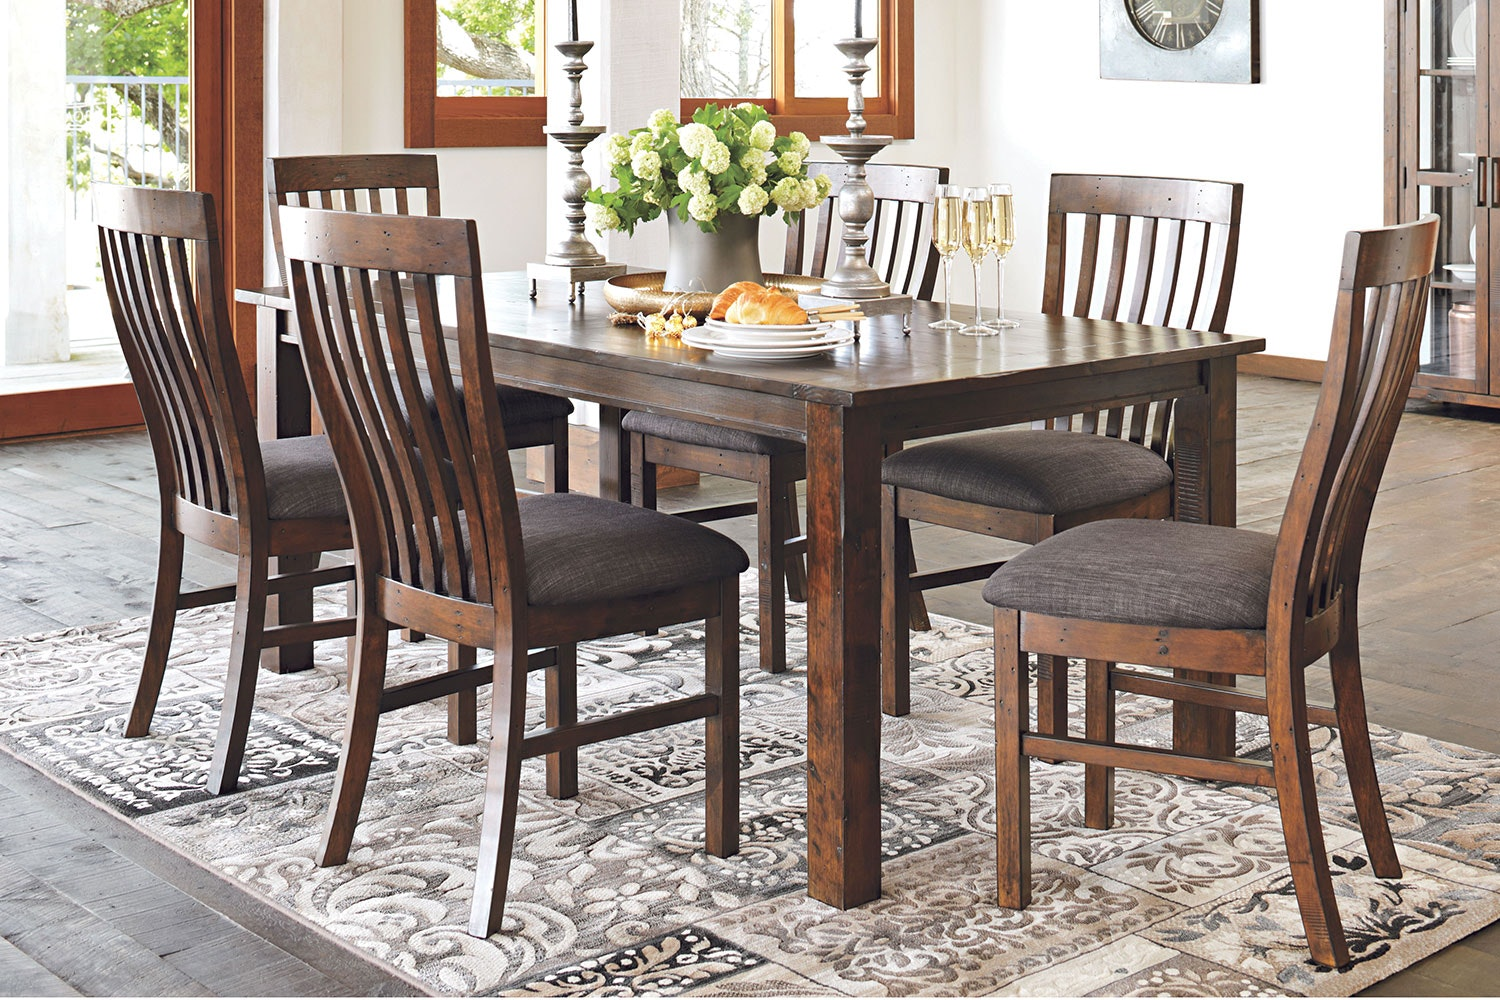 Farmhouse 7 Piece Dining Suite by John Young Furniture